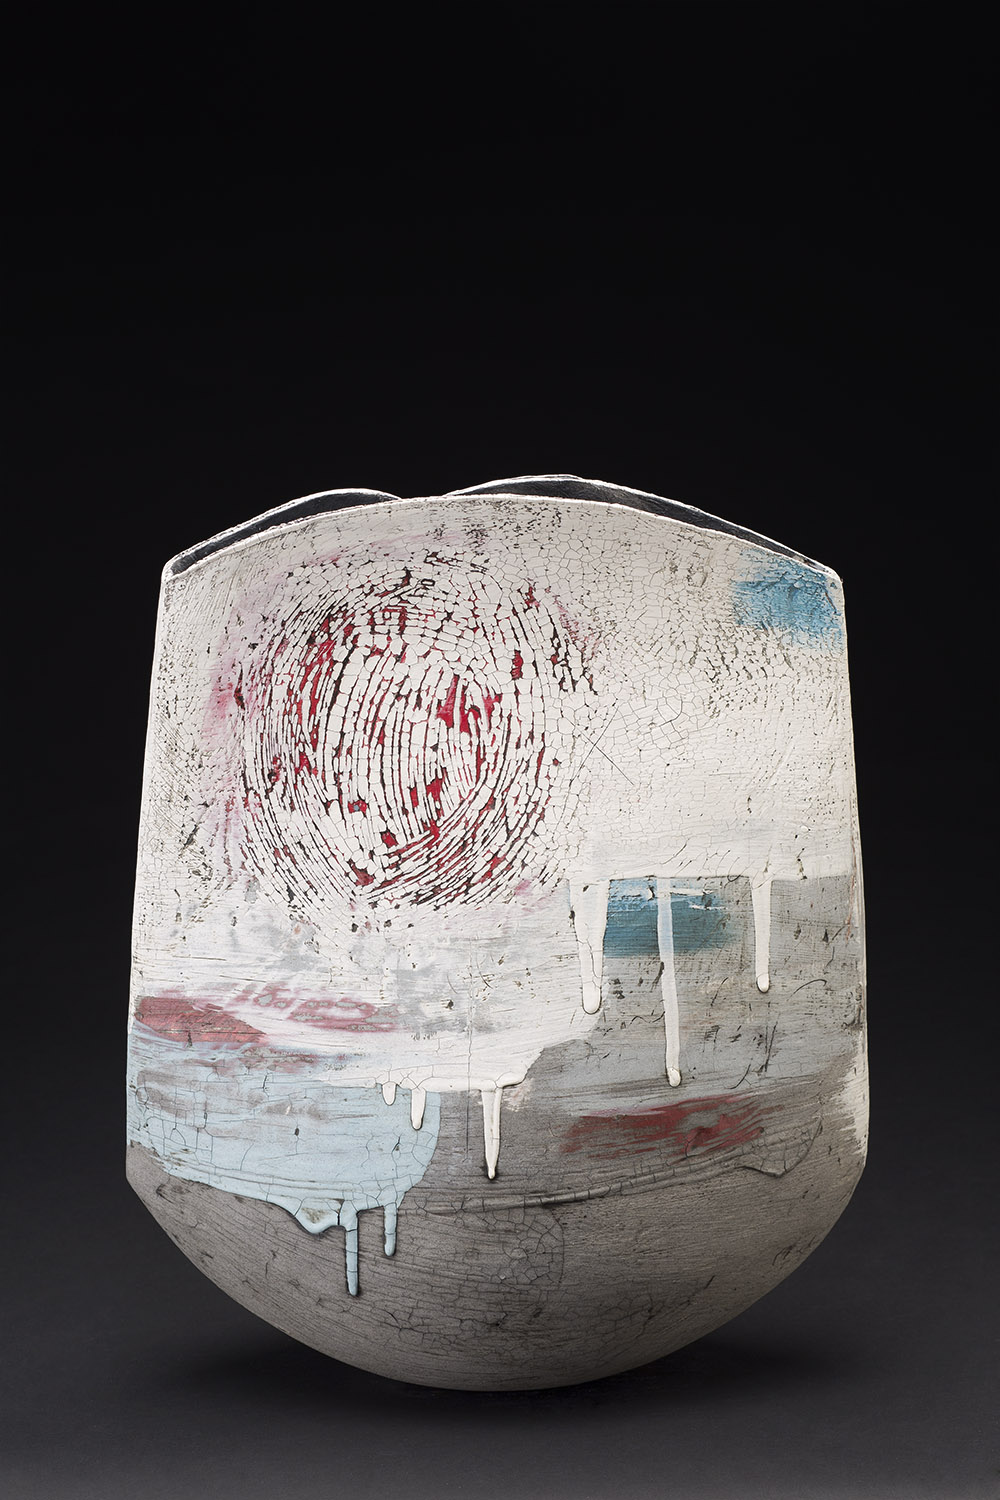 Lesley McInally    Forever  , 2015 Porcelain and stoneware coil vessel 16 x 15 x 7 inches 40.6 x 38.1 x 17.8 cm LMc 2